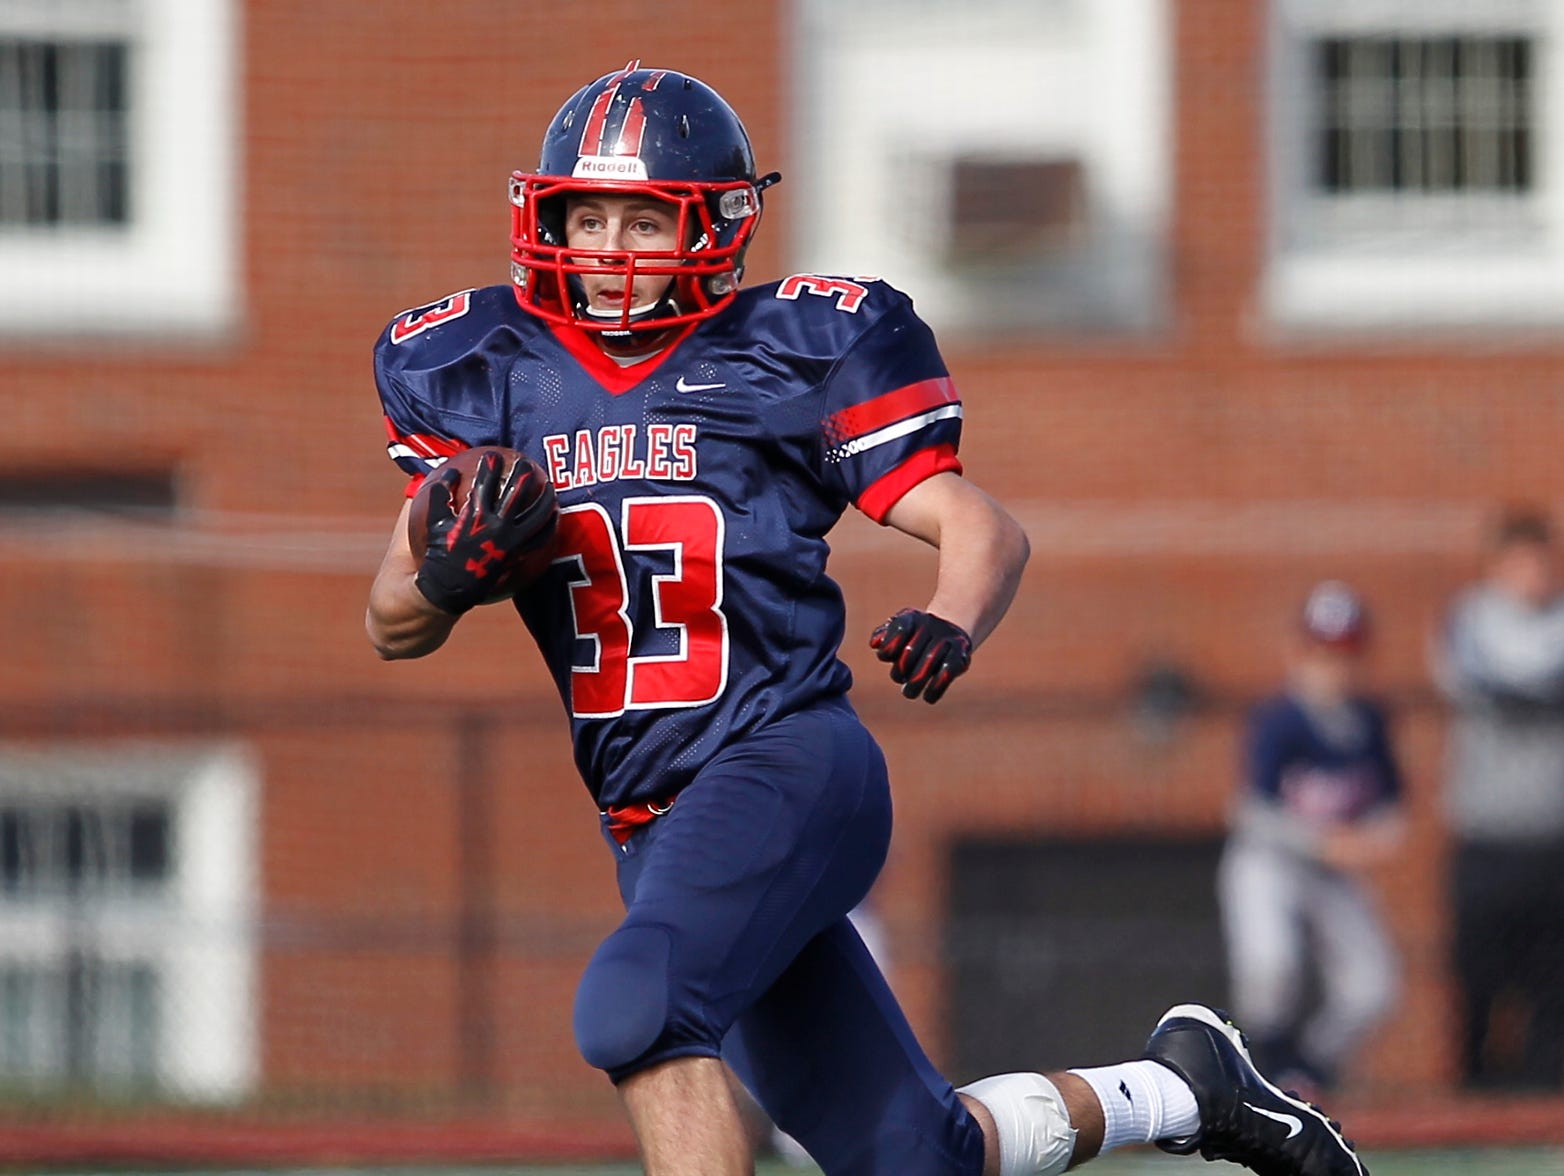 Eastchester running back John Guido (33) finds a hole for a short gain during their 19-27 loss to Our Lady of Lourdes High School in the class A semi-final football game in Eastchester on Saturday, Oct. 31, 2015.